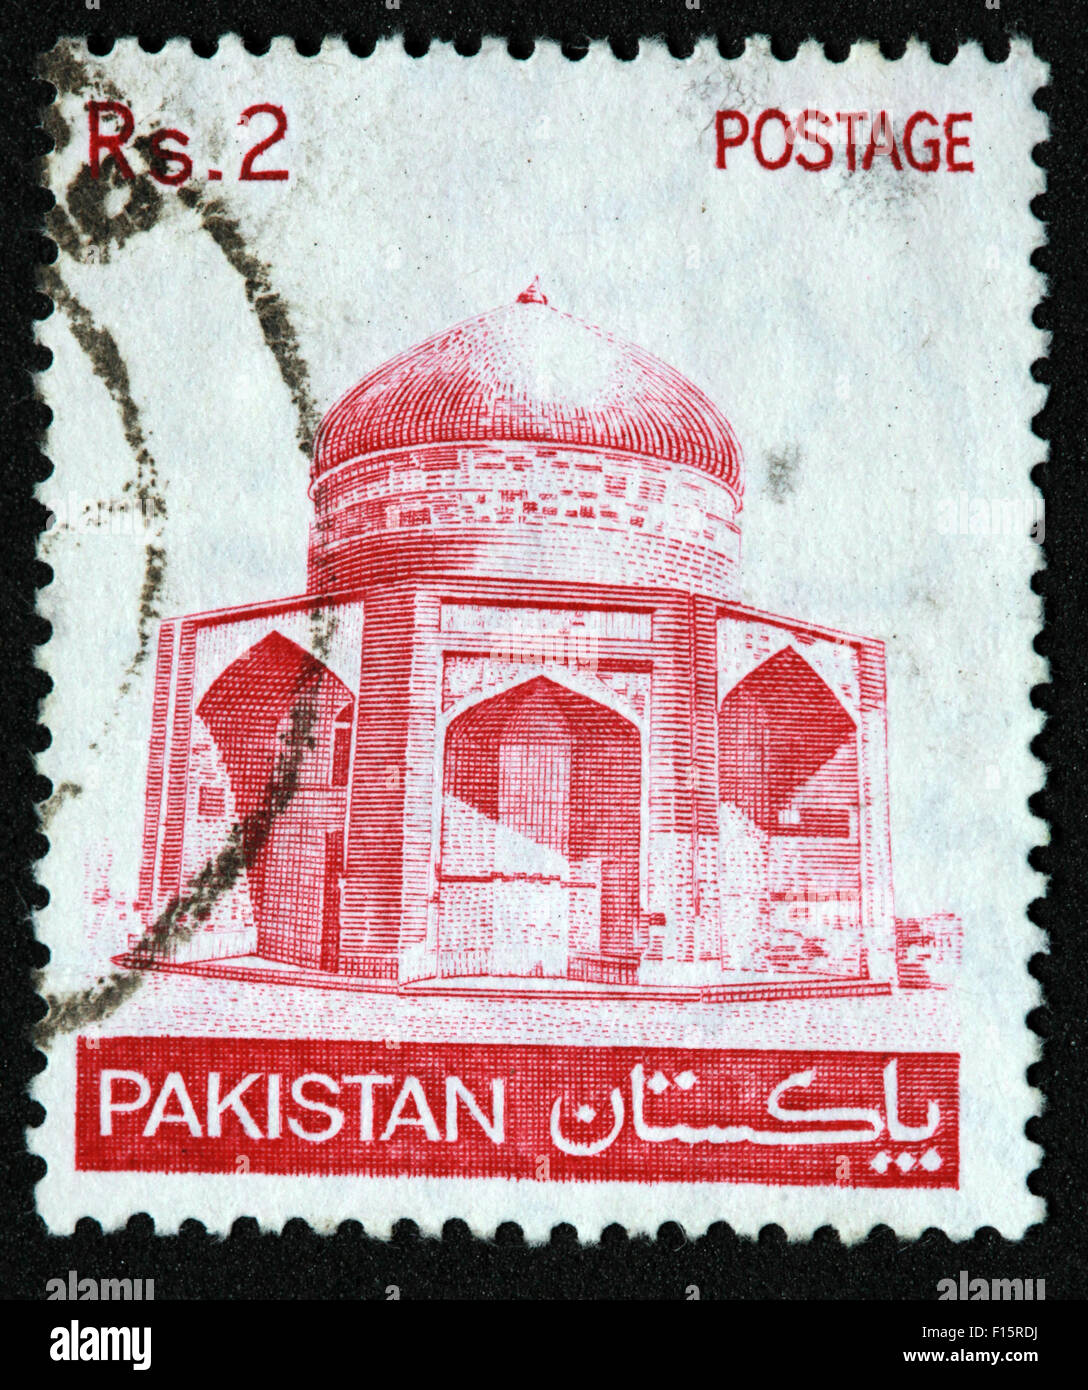 International Post,star,Used and Postmarked,Used,and,postmarked,perforated,stamp,Used,and,postmarked,Stamp,post,posting,mail,hobby,perforation,mark,postage,stamp,print,stamp,cancelled,stamp,payment,correspondence,postman,collection,collector,phila,Pakistani,Muslim,Gotonysmith,post,posting,mail,hobby,perforation,mark,postage,stamp,print,stamp,cancelled,canceled,stamp,payment,correspondence,postman,collection,collector,philately,philatelist,letter,price,history,retro,Australian,Vintage,delivery,date,relationship,communication,Oz,Australia,DownUnder,classic rare unique Austrailian financial,investment,invest,value,British,empire,nation,canceled,printed on black background,close-up,closeup,close,up,sent,send,philately,mailing,shipping,postoffice,office,isolated,circa,special,colour,color,postmarked,marked,airmail,aged,antique,retro,cutting,historic,old,stamps,collection,stamp collection,album,Timbre,Sello,Stempel,Selo,Buy Pictures of,Buy Images Of,Down Under,Black background